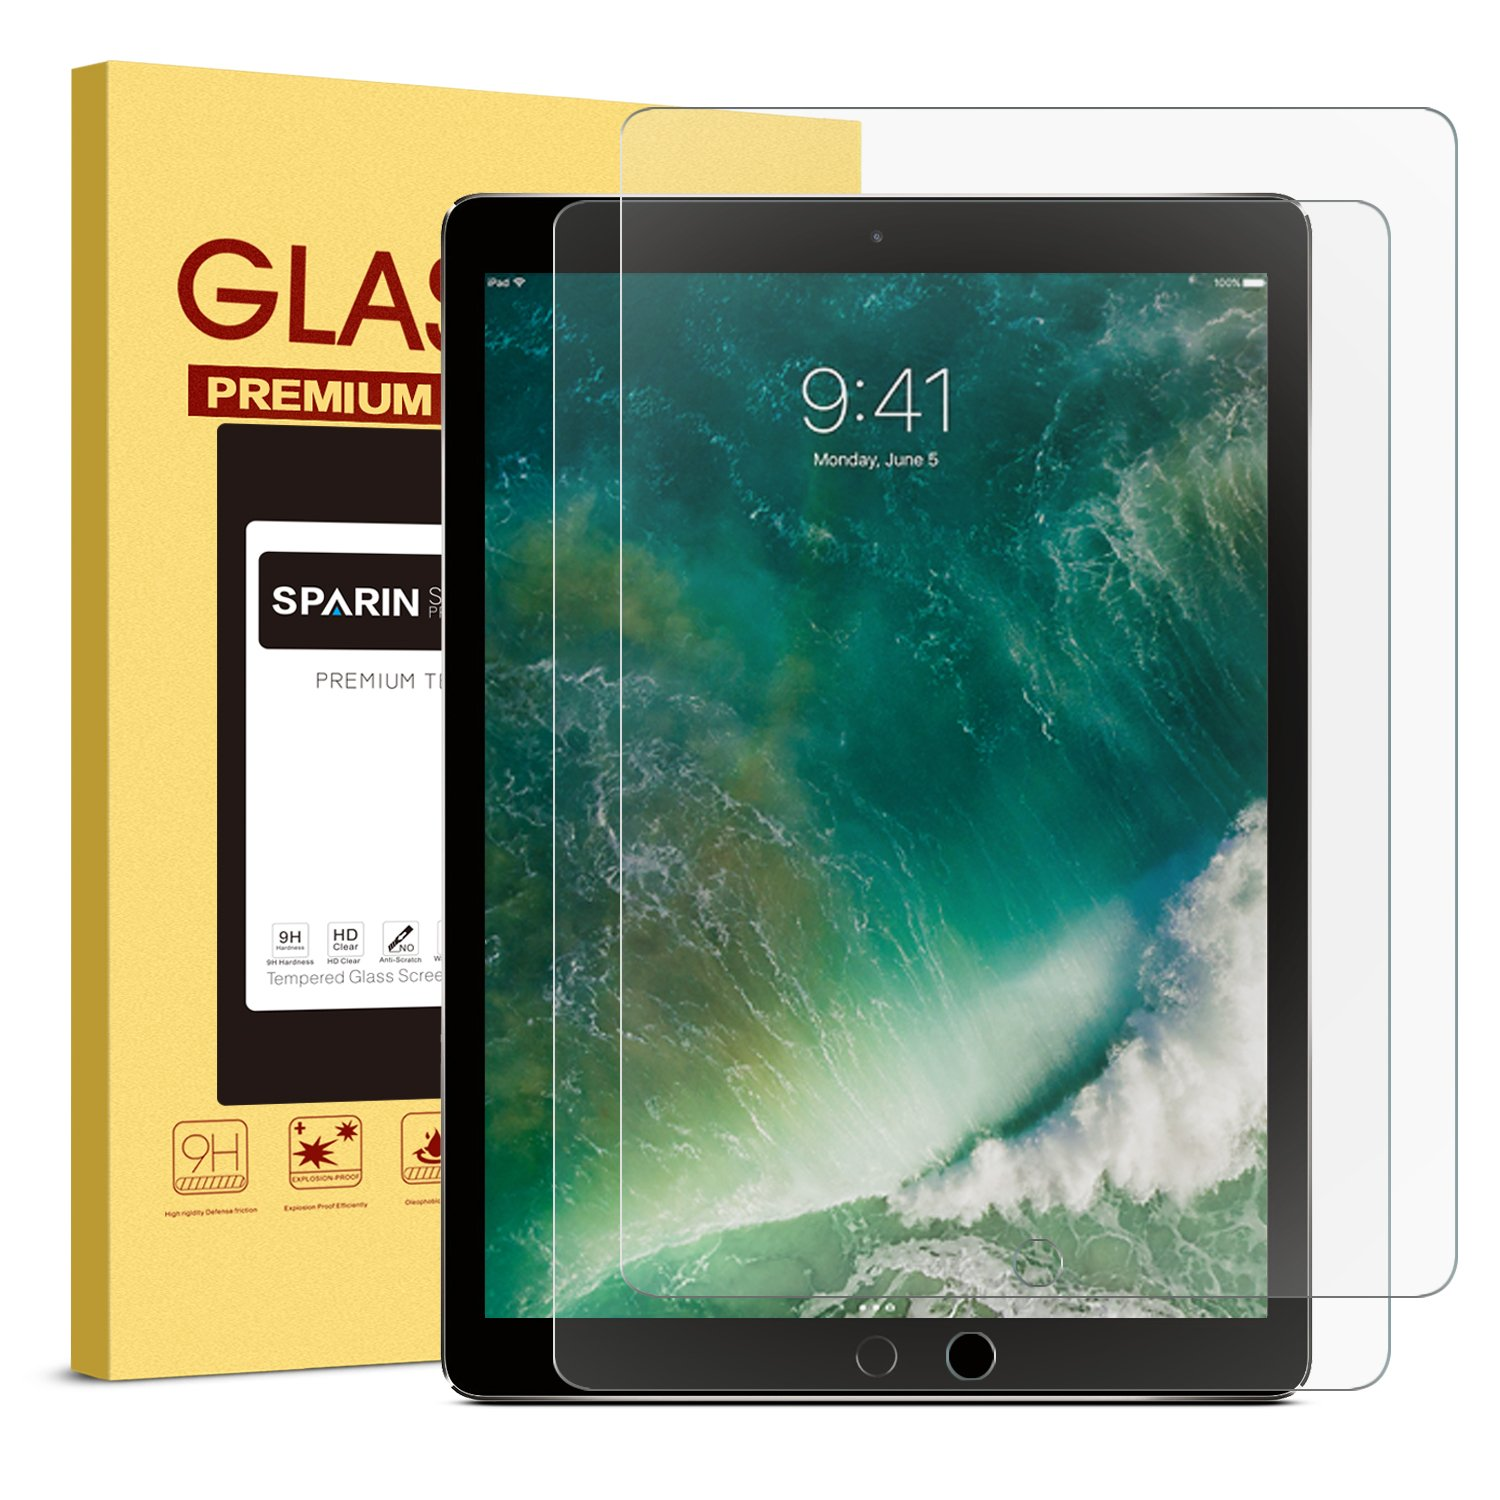 [2 PACK] iPad Pro 12.9 Screen Protector, SPARIN Multi-Touch Compatible / Bubble-Free / Anti-Scratch Tempered Glass Screen Protector For 12.9-Inch iPad Pro (2015, 2017 Release) by SPARIN (Image #1)